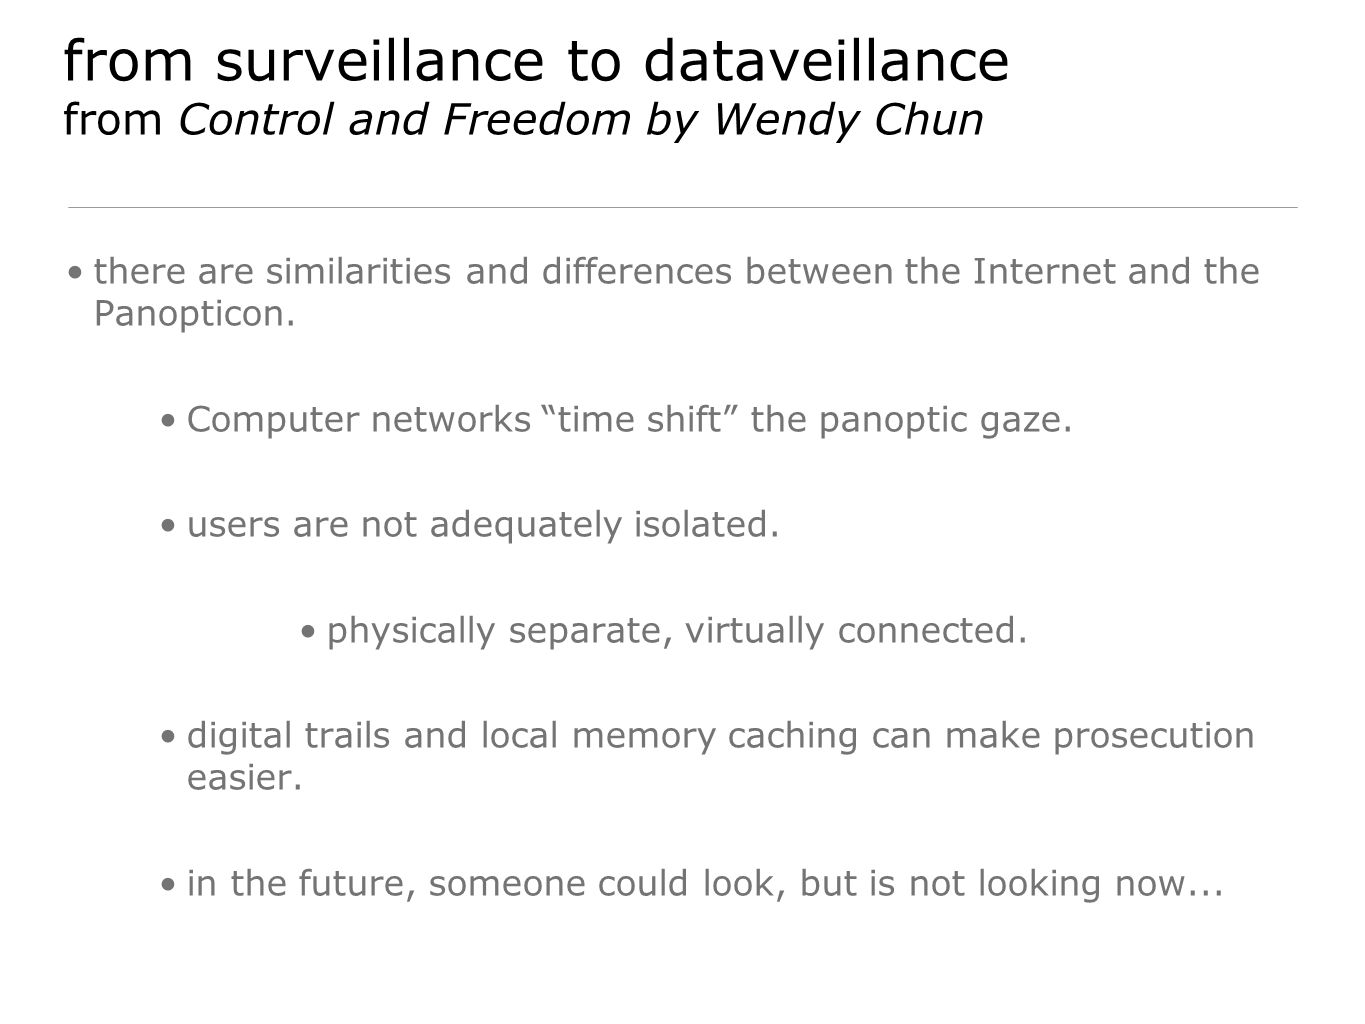 from surveillance to dataveillance from Control and Freedom by Wendy Chun there are similarities and differences between the Internet and the Panopticon.